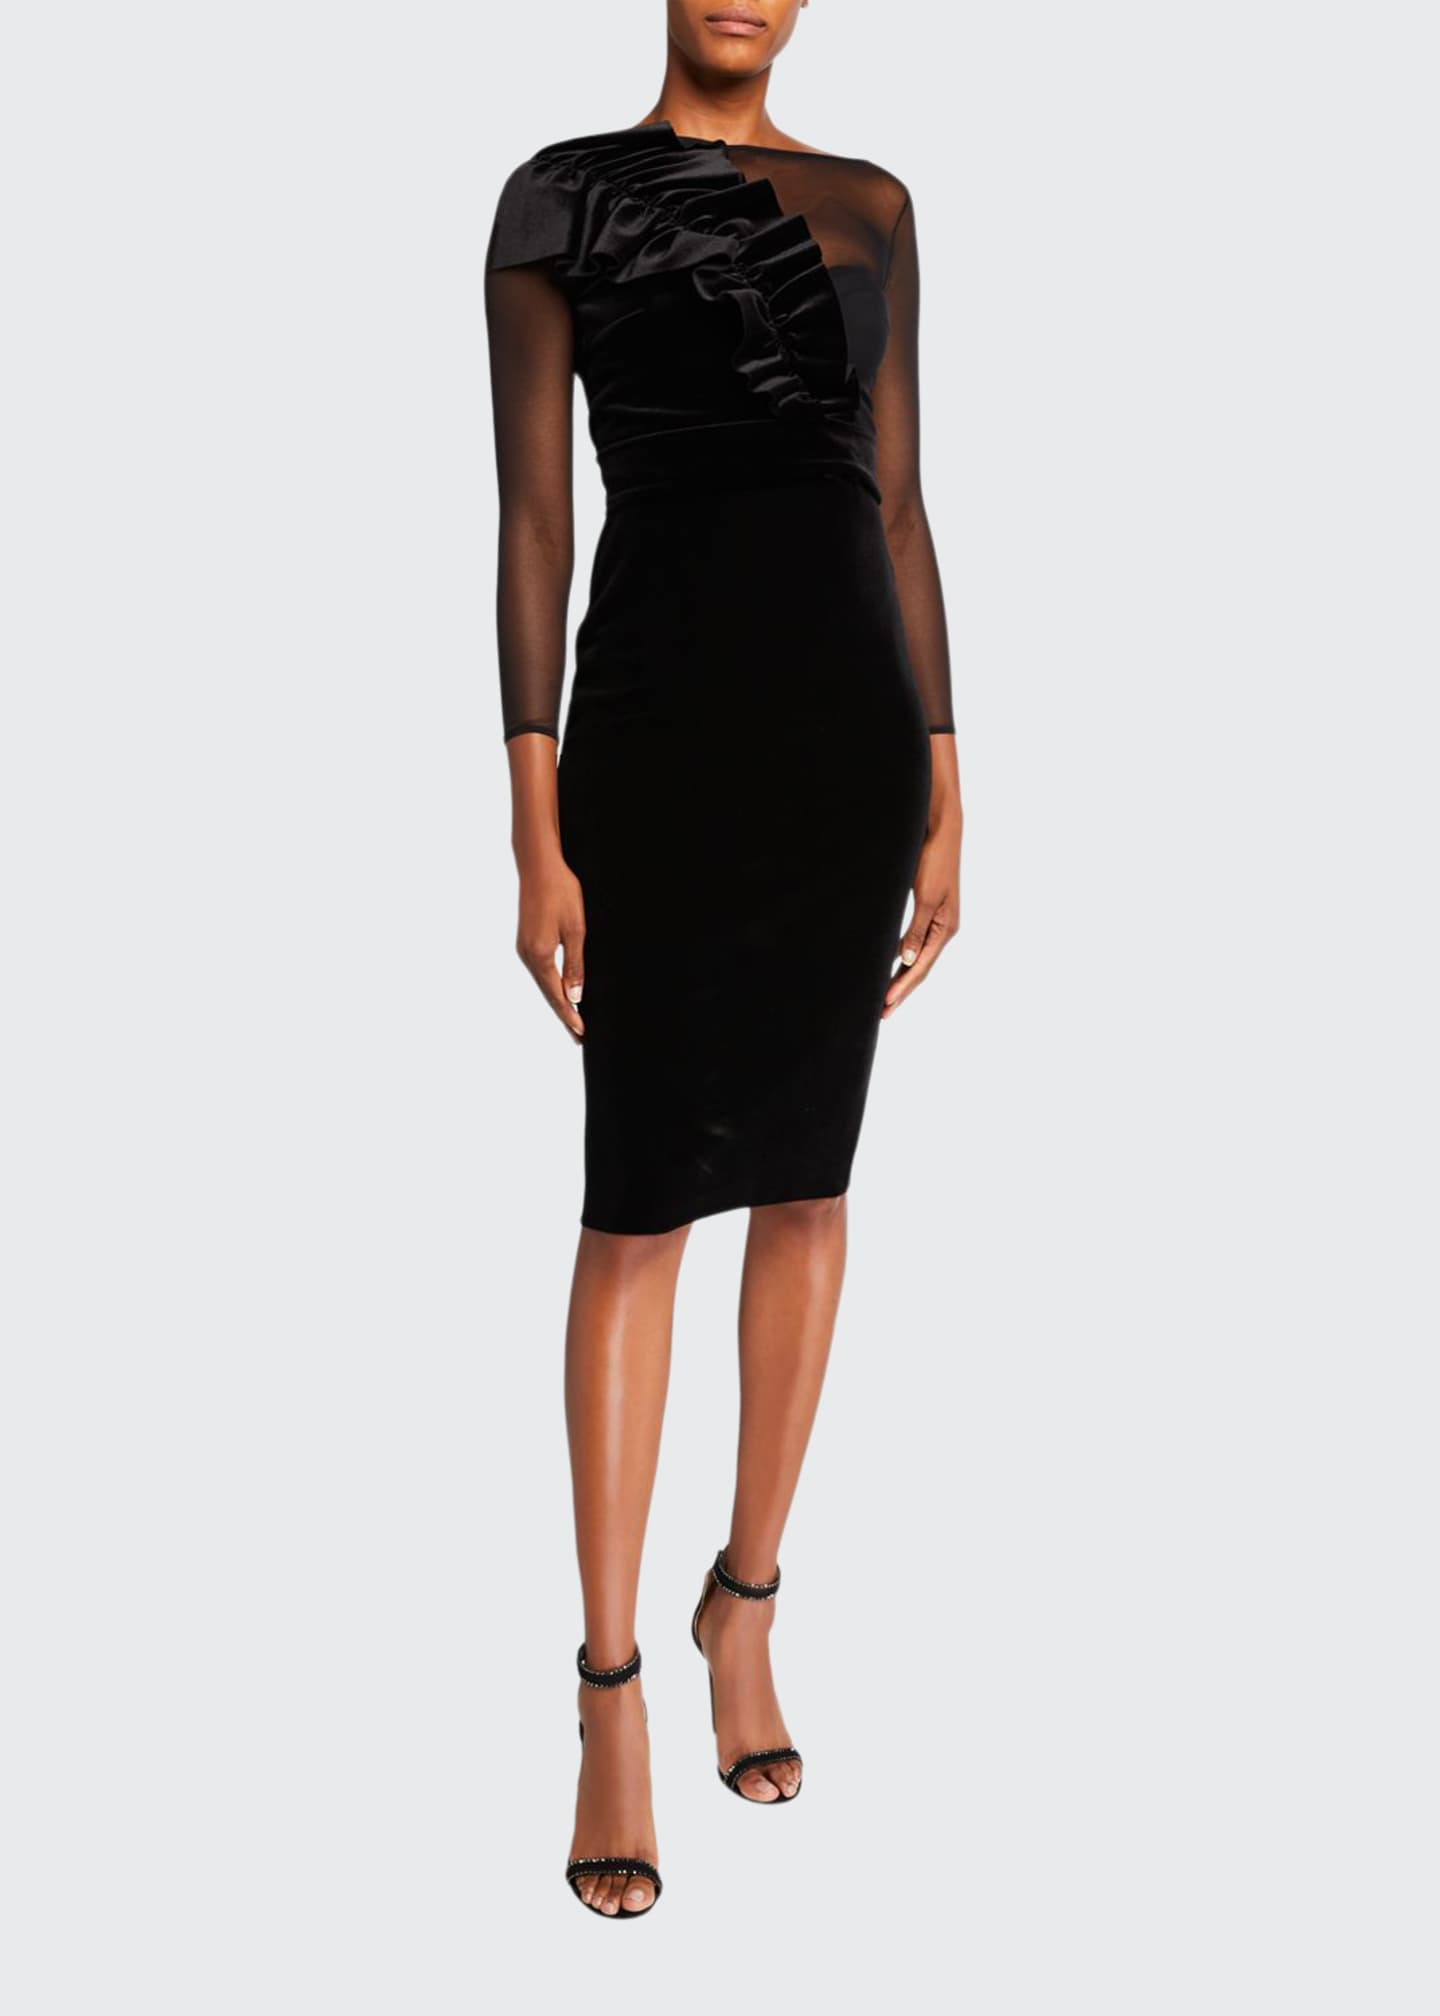 Chiara Boni La Petite Robe Bracelet-Sleeve Illusion Dress